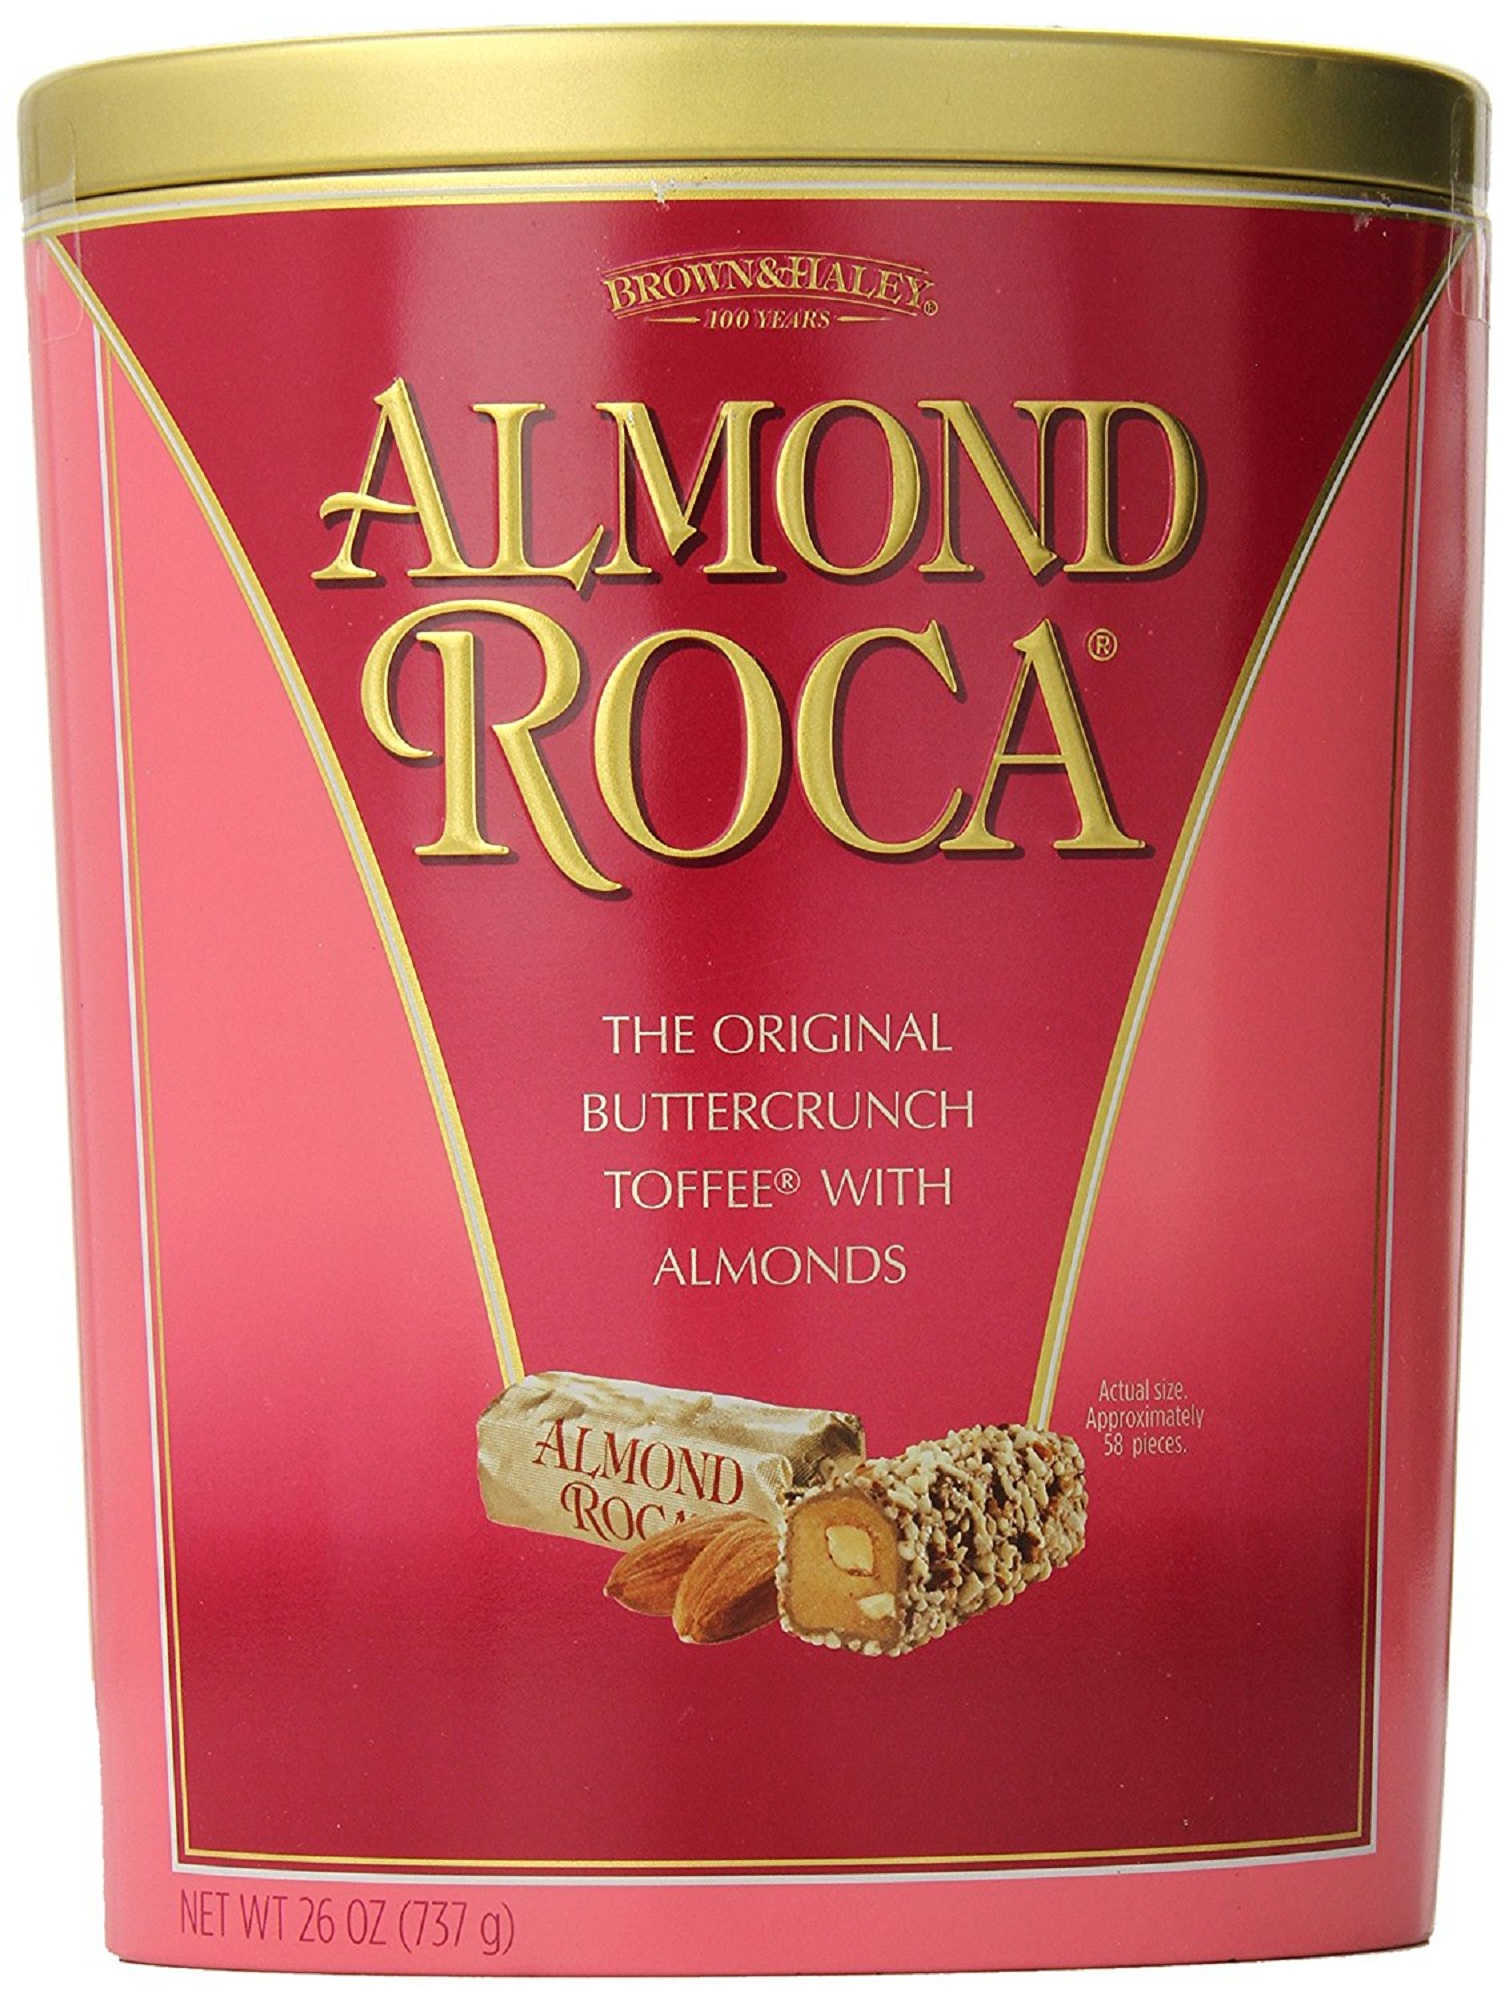 Almond Roca Buttercrunch Toffee with Almonds 26 oz by Brown & Haley